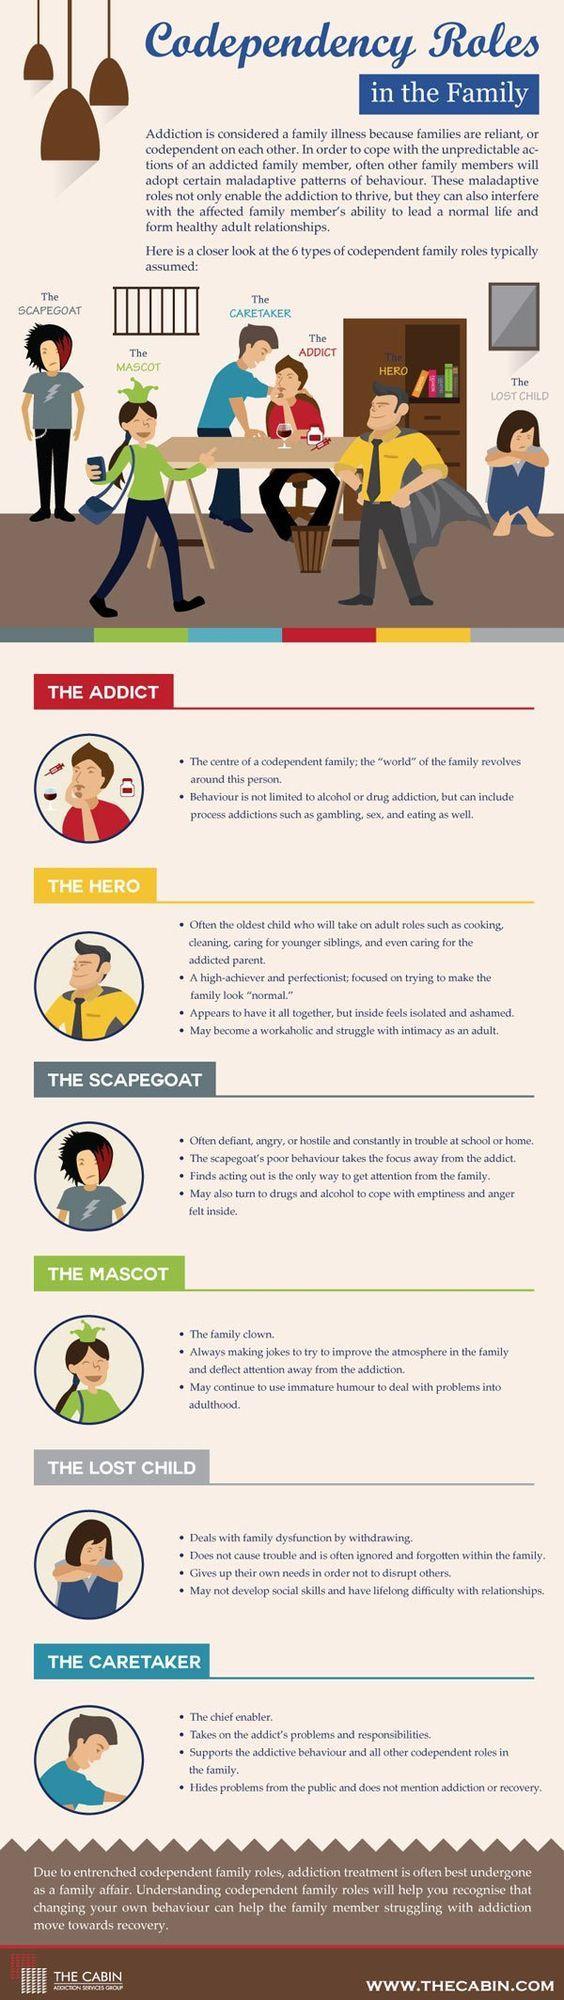 Addiction isn't a solitary illness. This means that even though only one member of the family may have an addiction, each other member is affected by it. In this infographic by Change to Change, we…